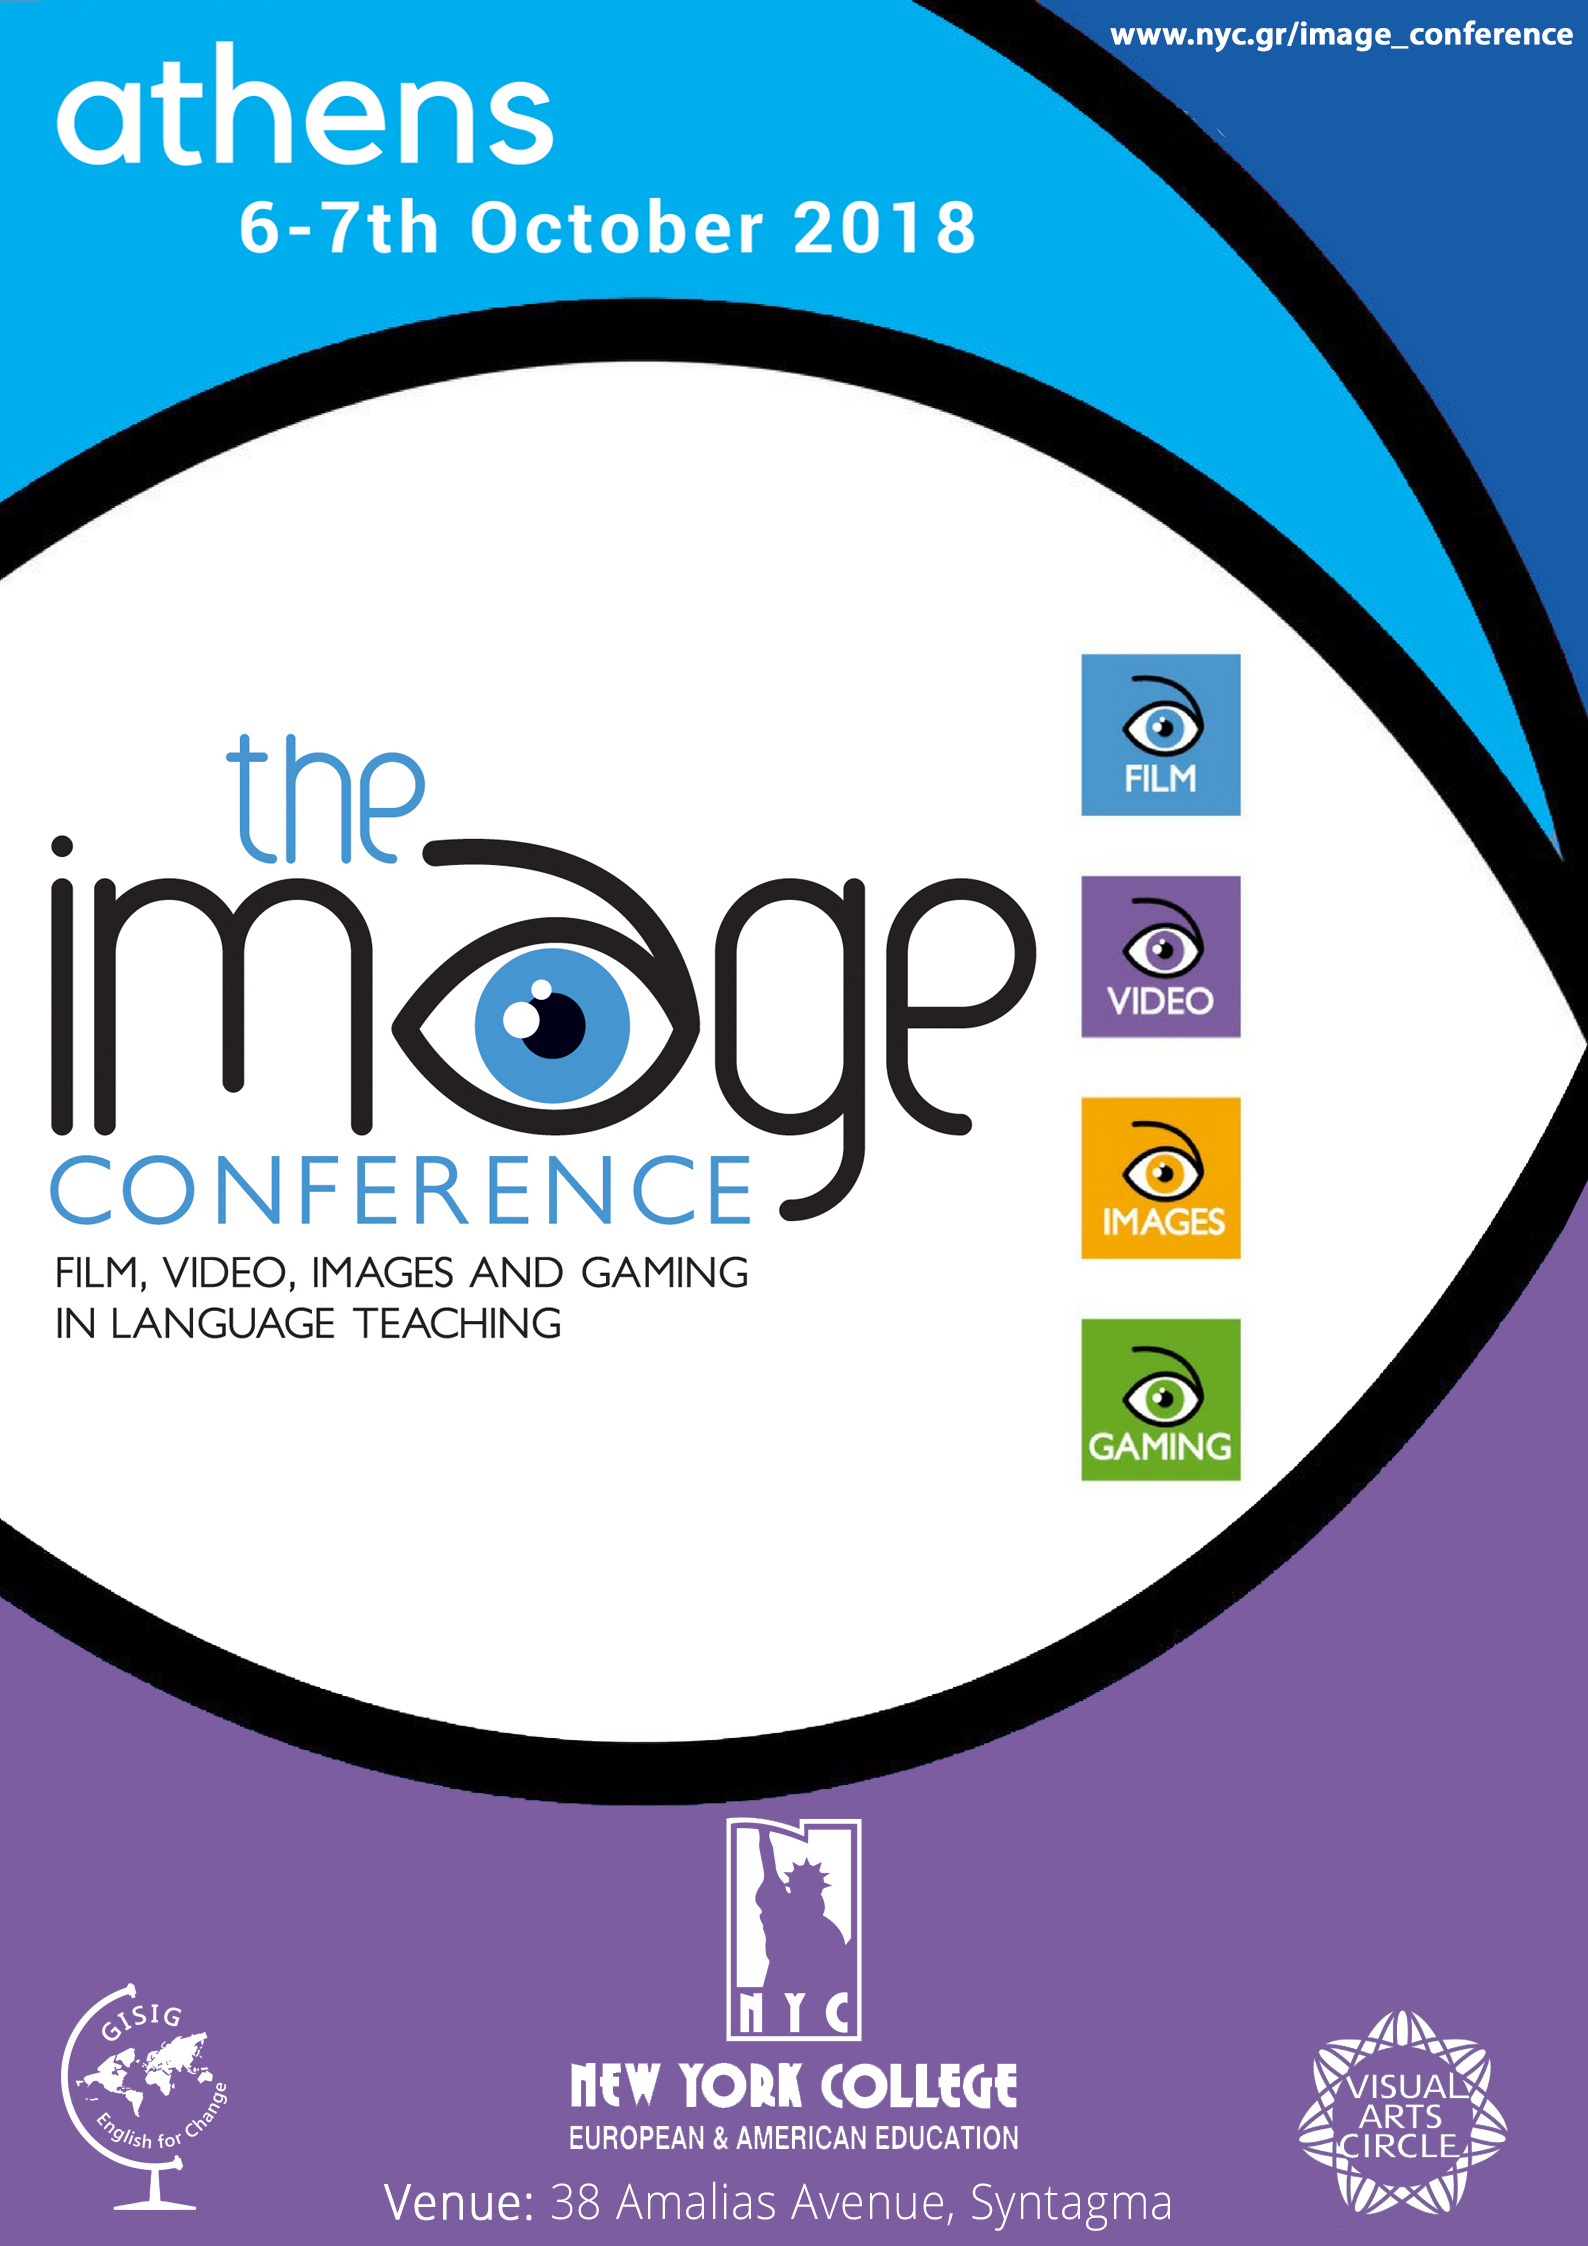 Poster Image Conference with Website